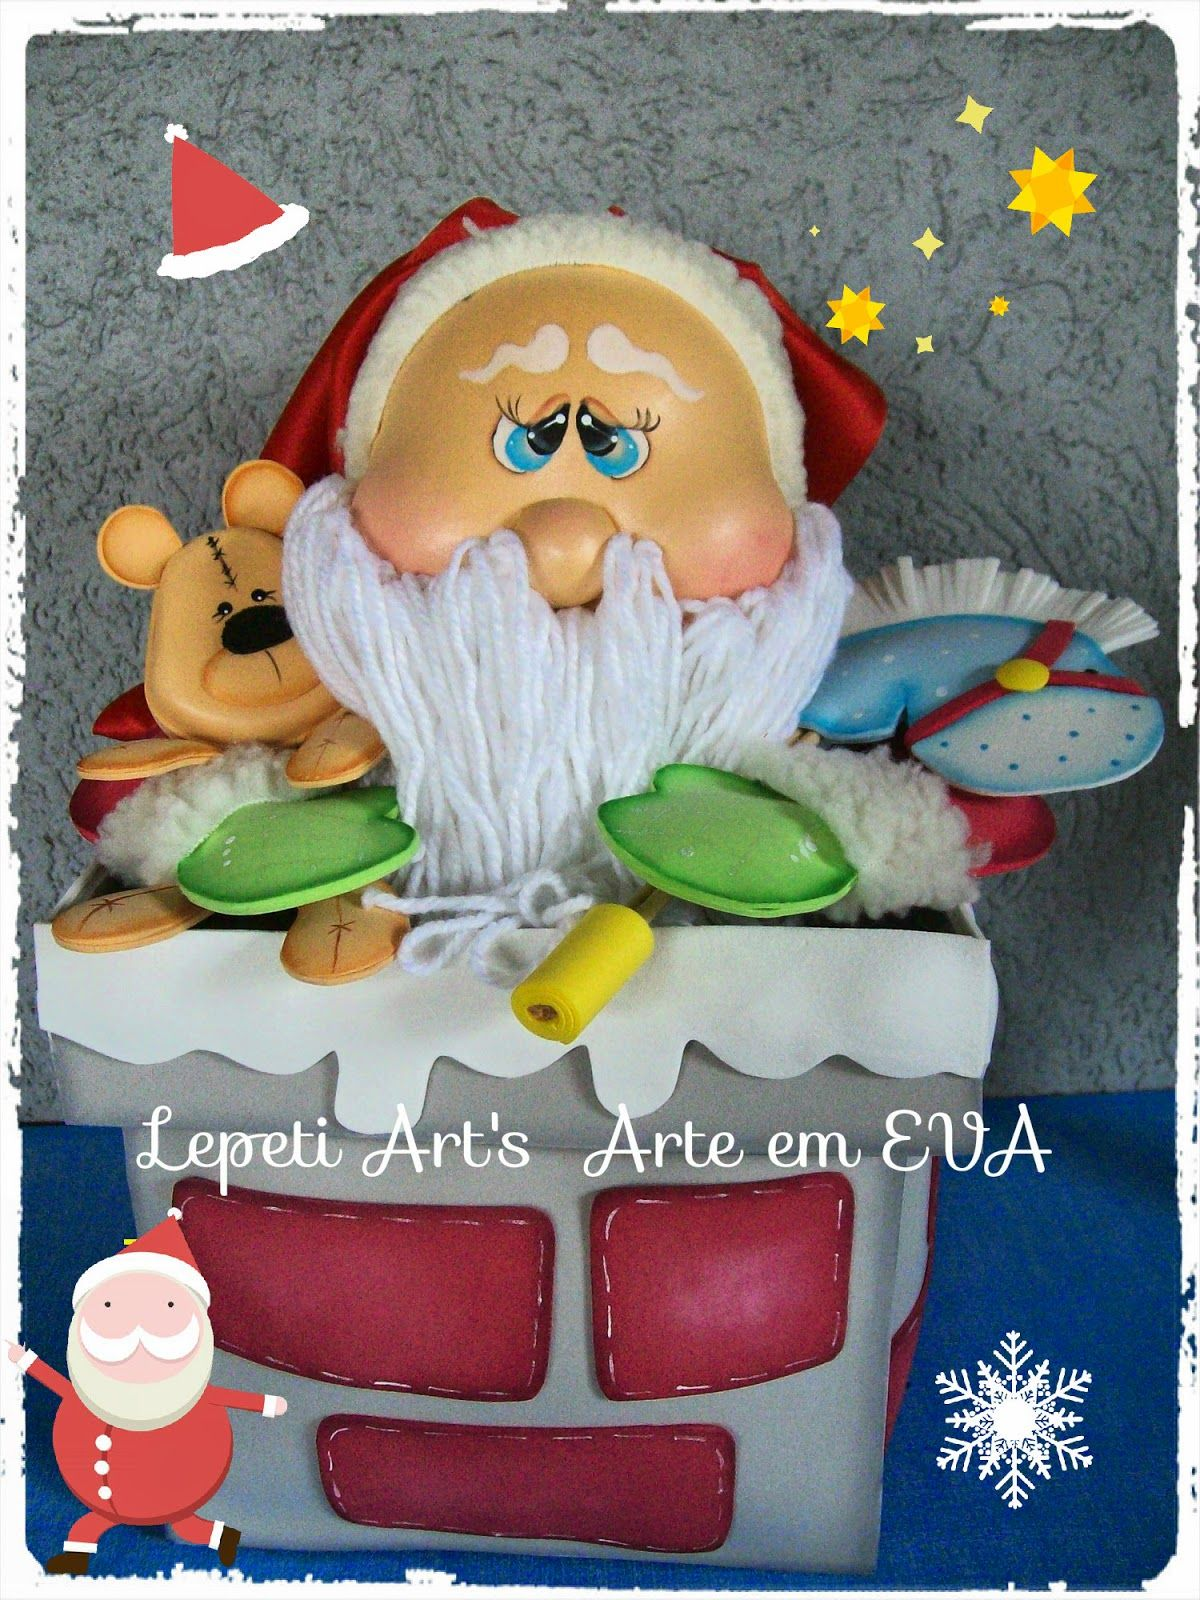 Lepeti Arts Pe As Oficina De Natal By Vivendo Em